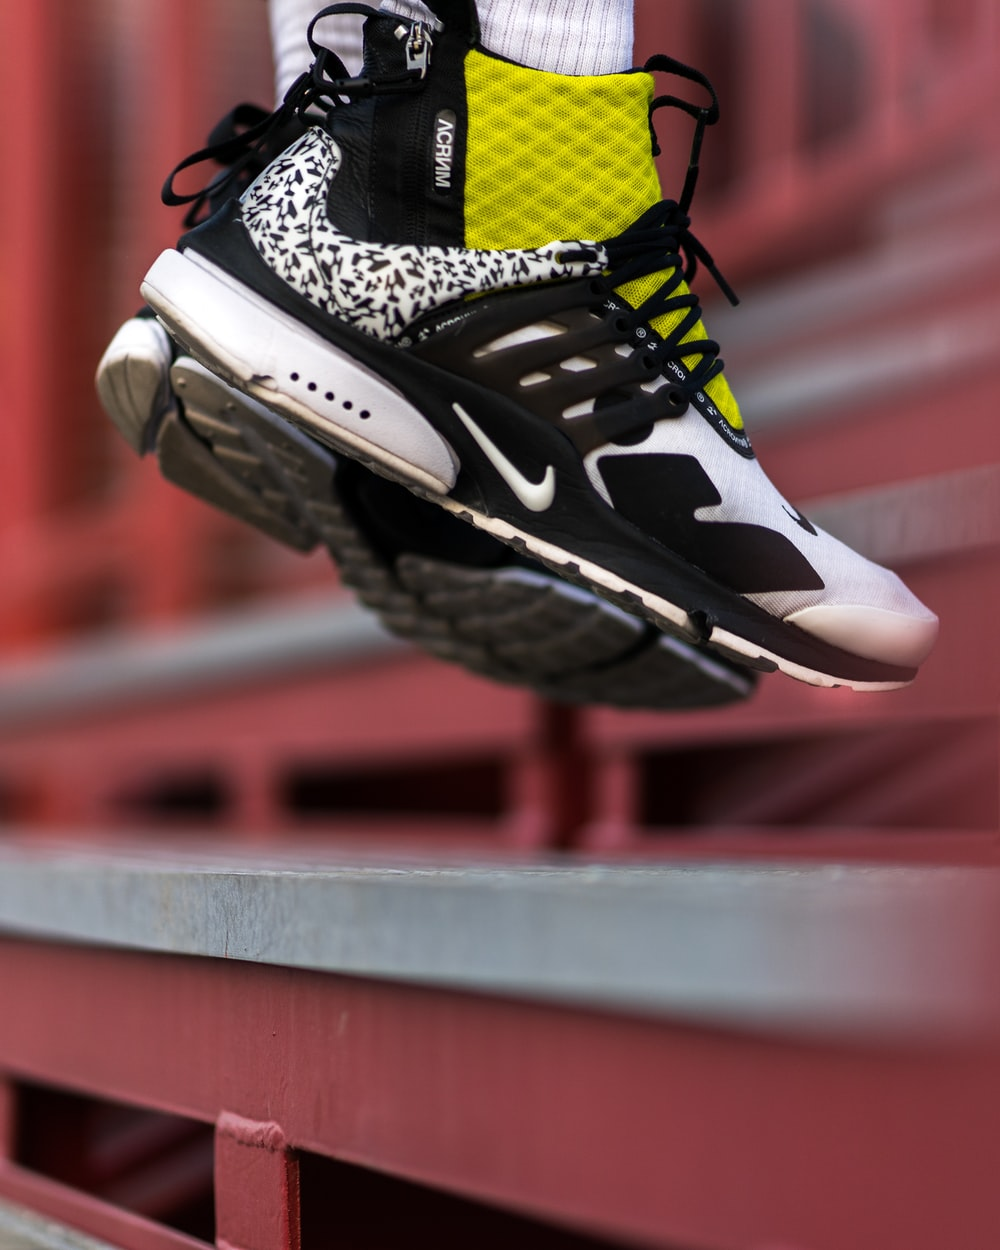 pair of white, black and yellow Nike shoes